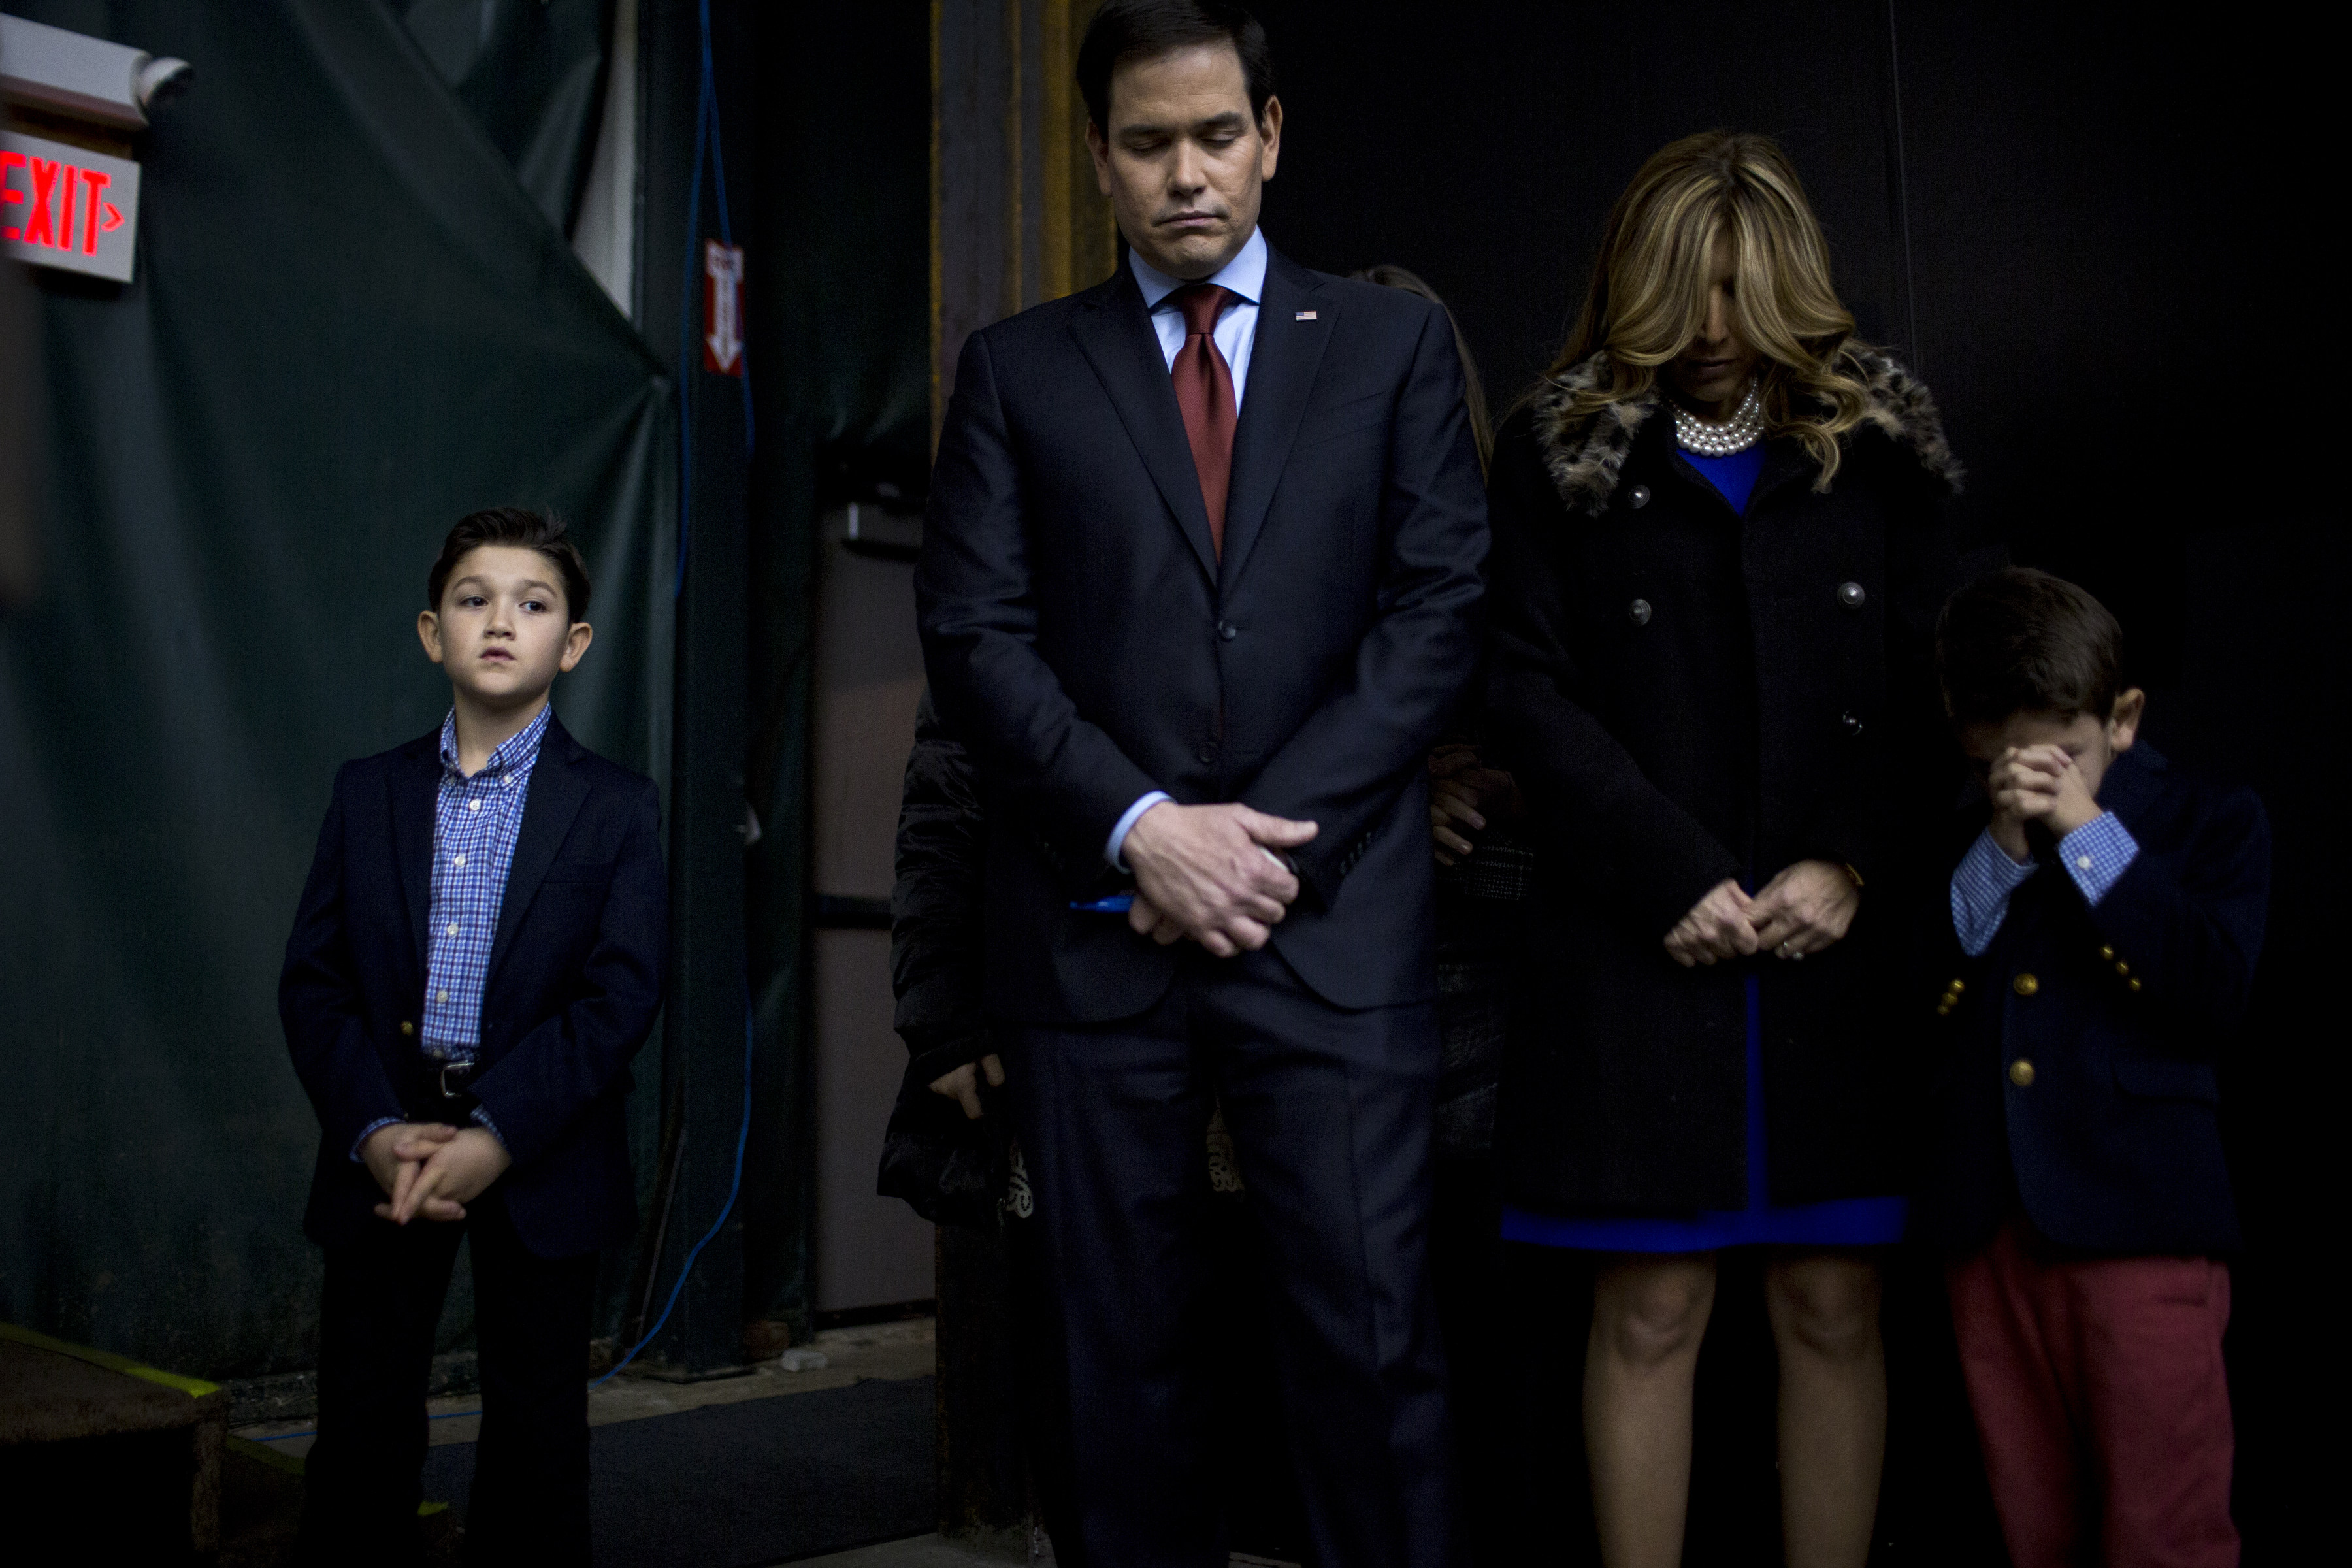 Republican presidential candidate, Marco Rubio, appeared at a GOP caucus location with his family on Feb. 1, 2016, at the 7 Flags Event Center in Clive, Iowa.From  A Photographer's View of the Iowa Caucuses